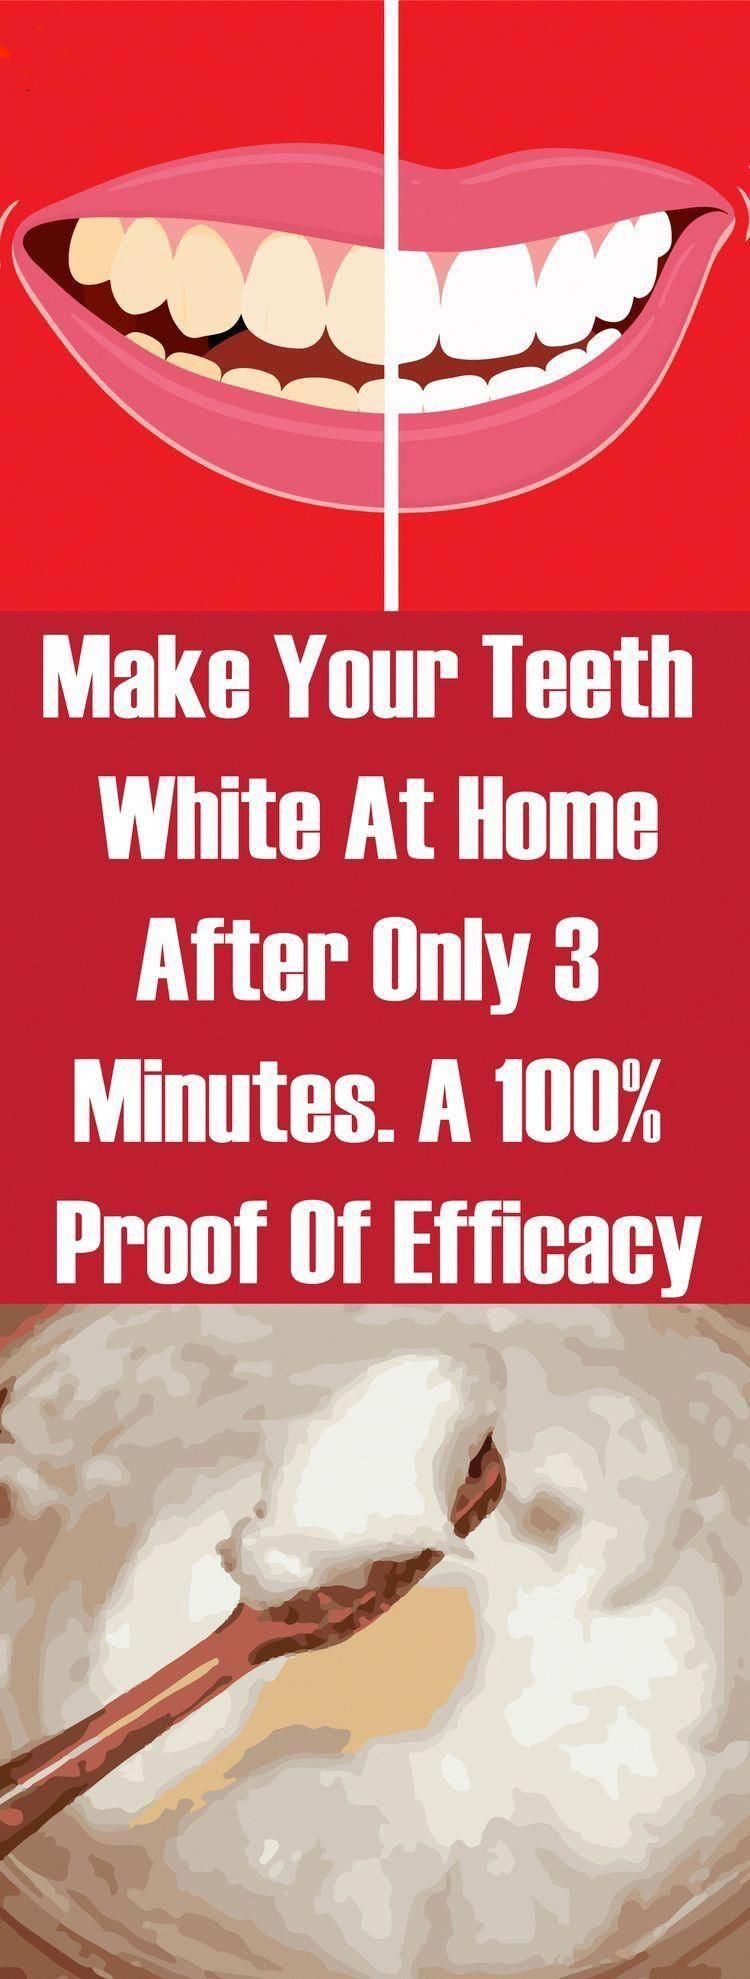 Make Your Teeth White At Home After Only 3 Minutes. A 100